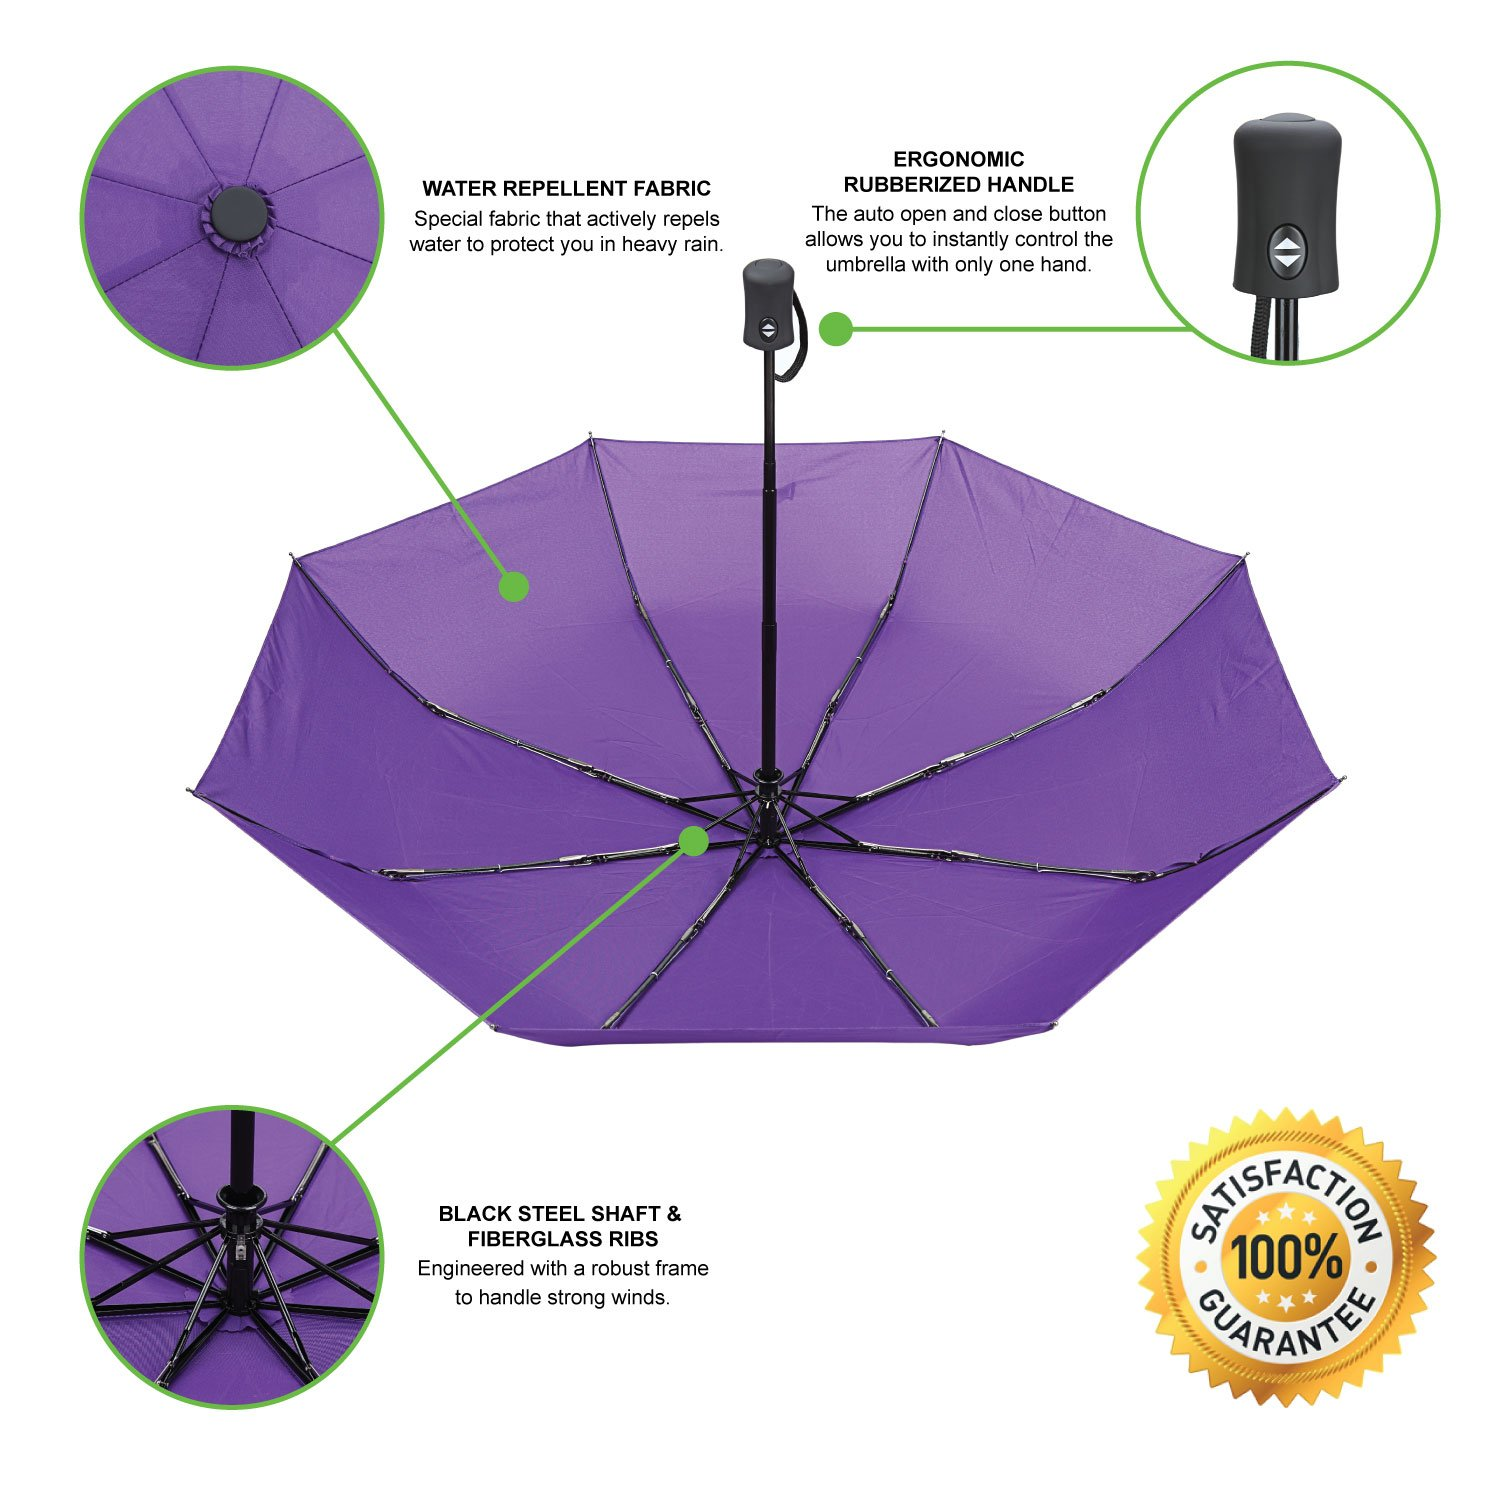 Automatic Open Close with Rain Repellent Fabric portable umbrella Vumos Umbrella with Waterproof Case